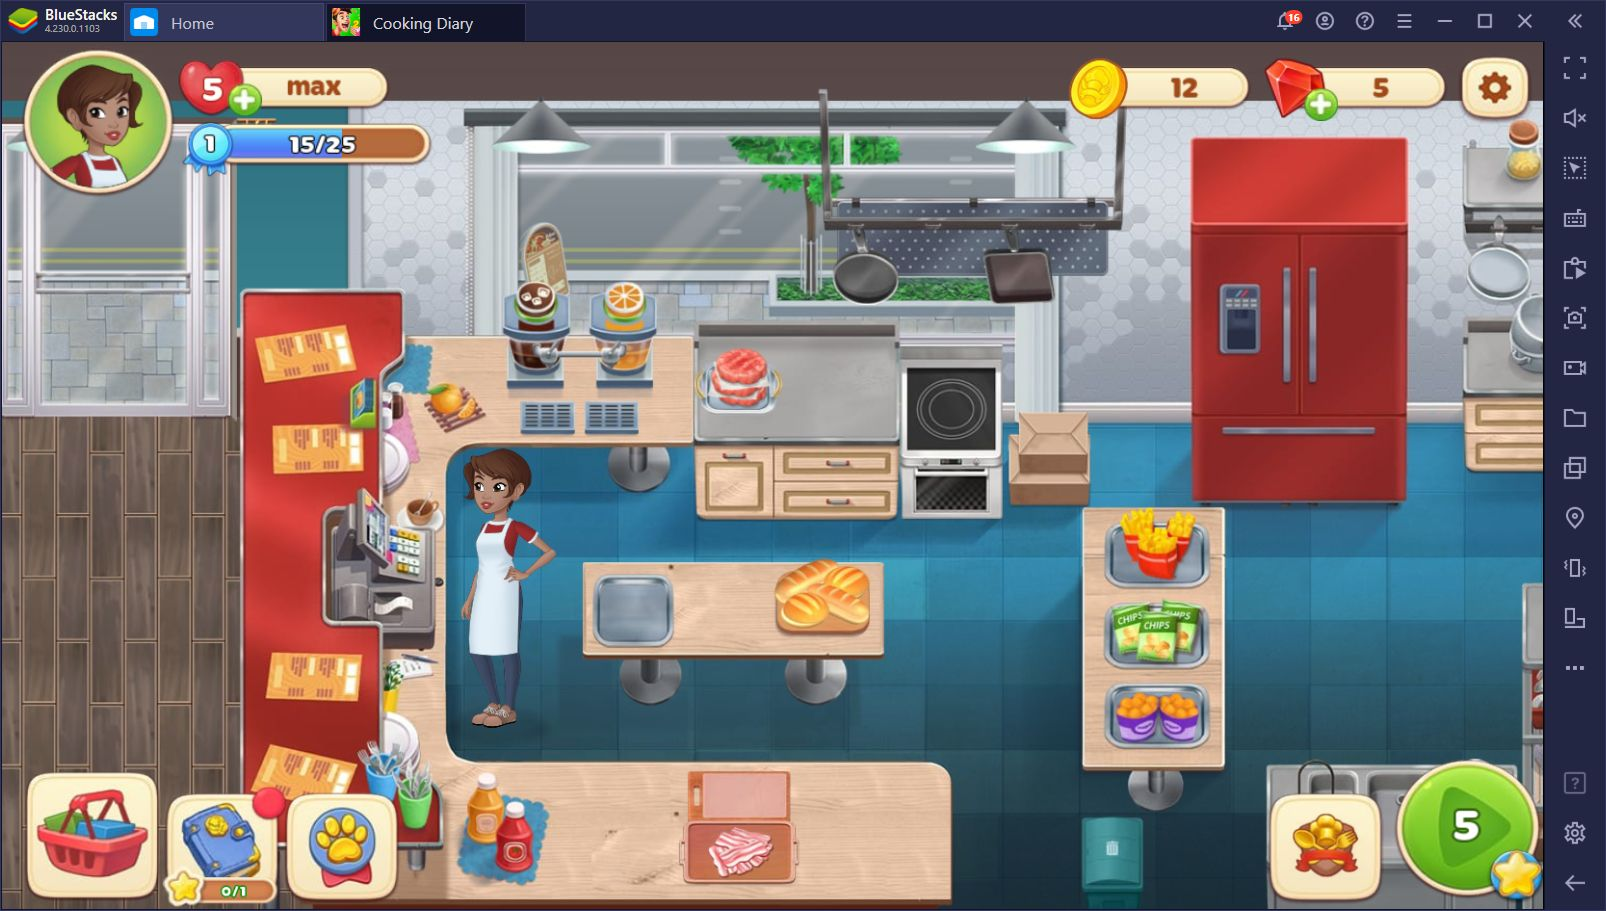 Cooking Diary on PC – How to Install and Play This Mobile Diner Game